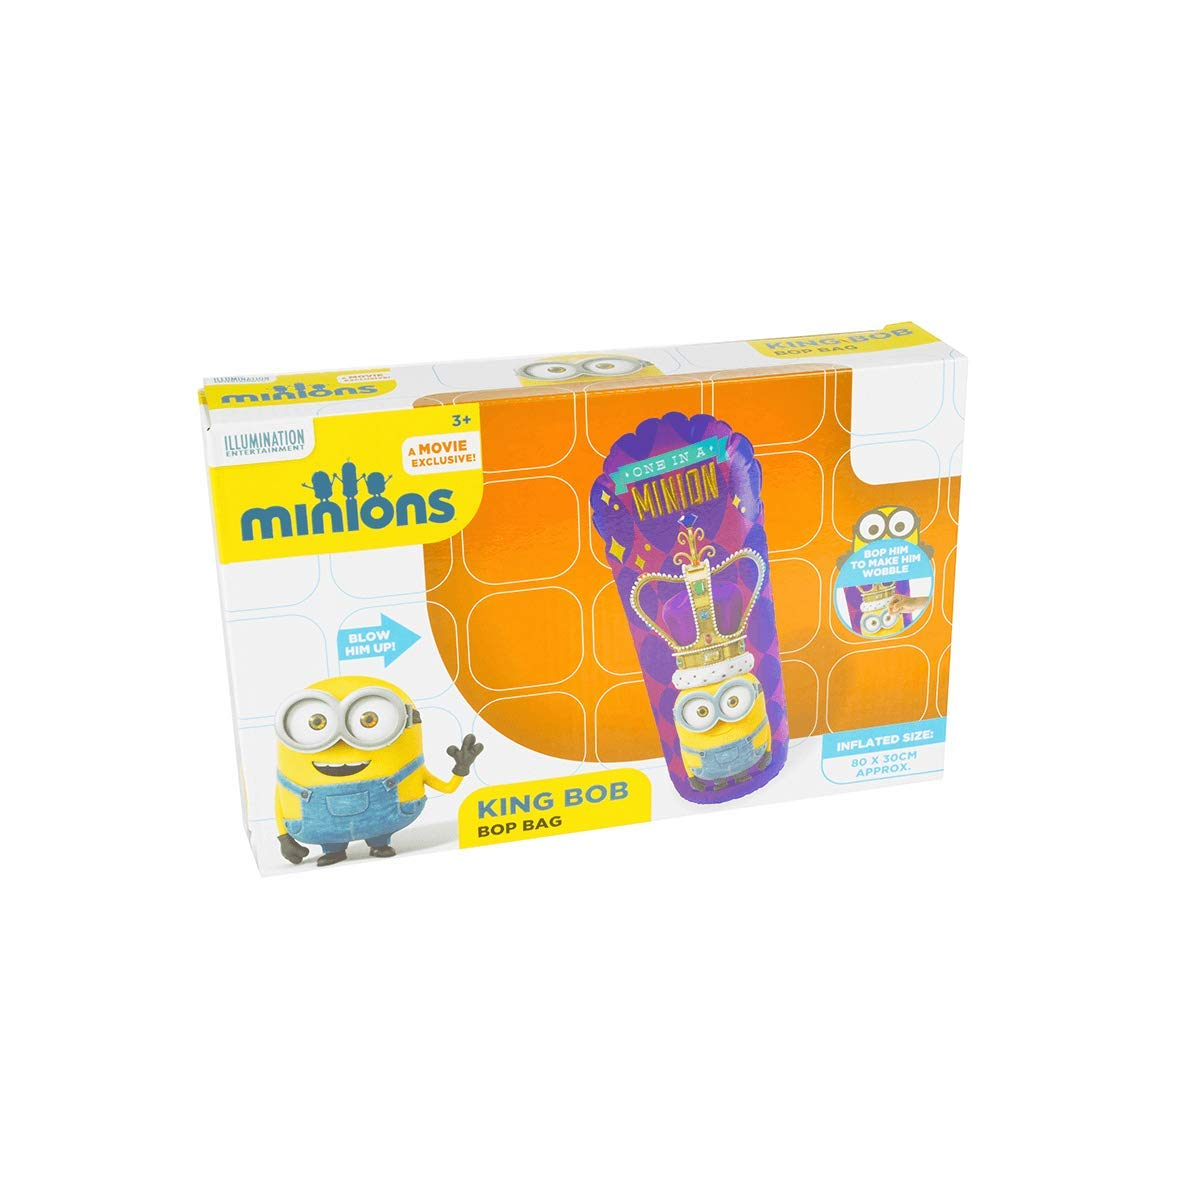 Hinchable tentetieso Minions Bop Bag 80cm Surtido: Amazon.es ...